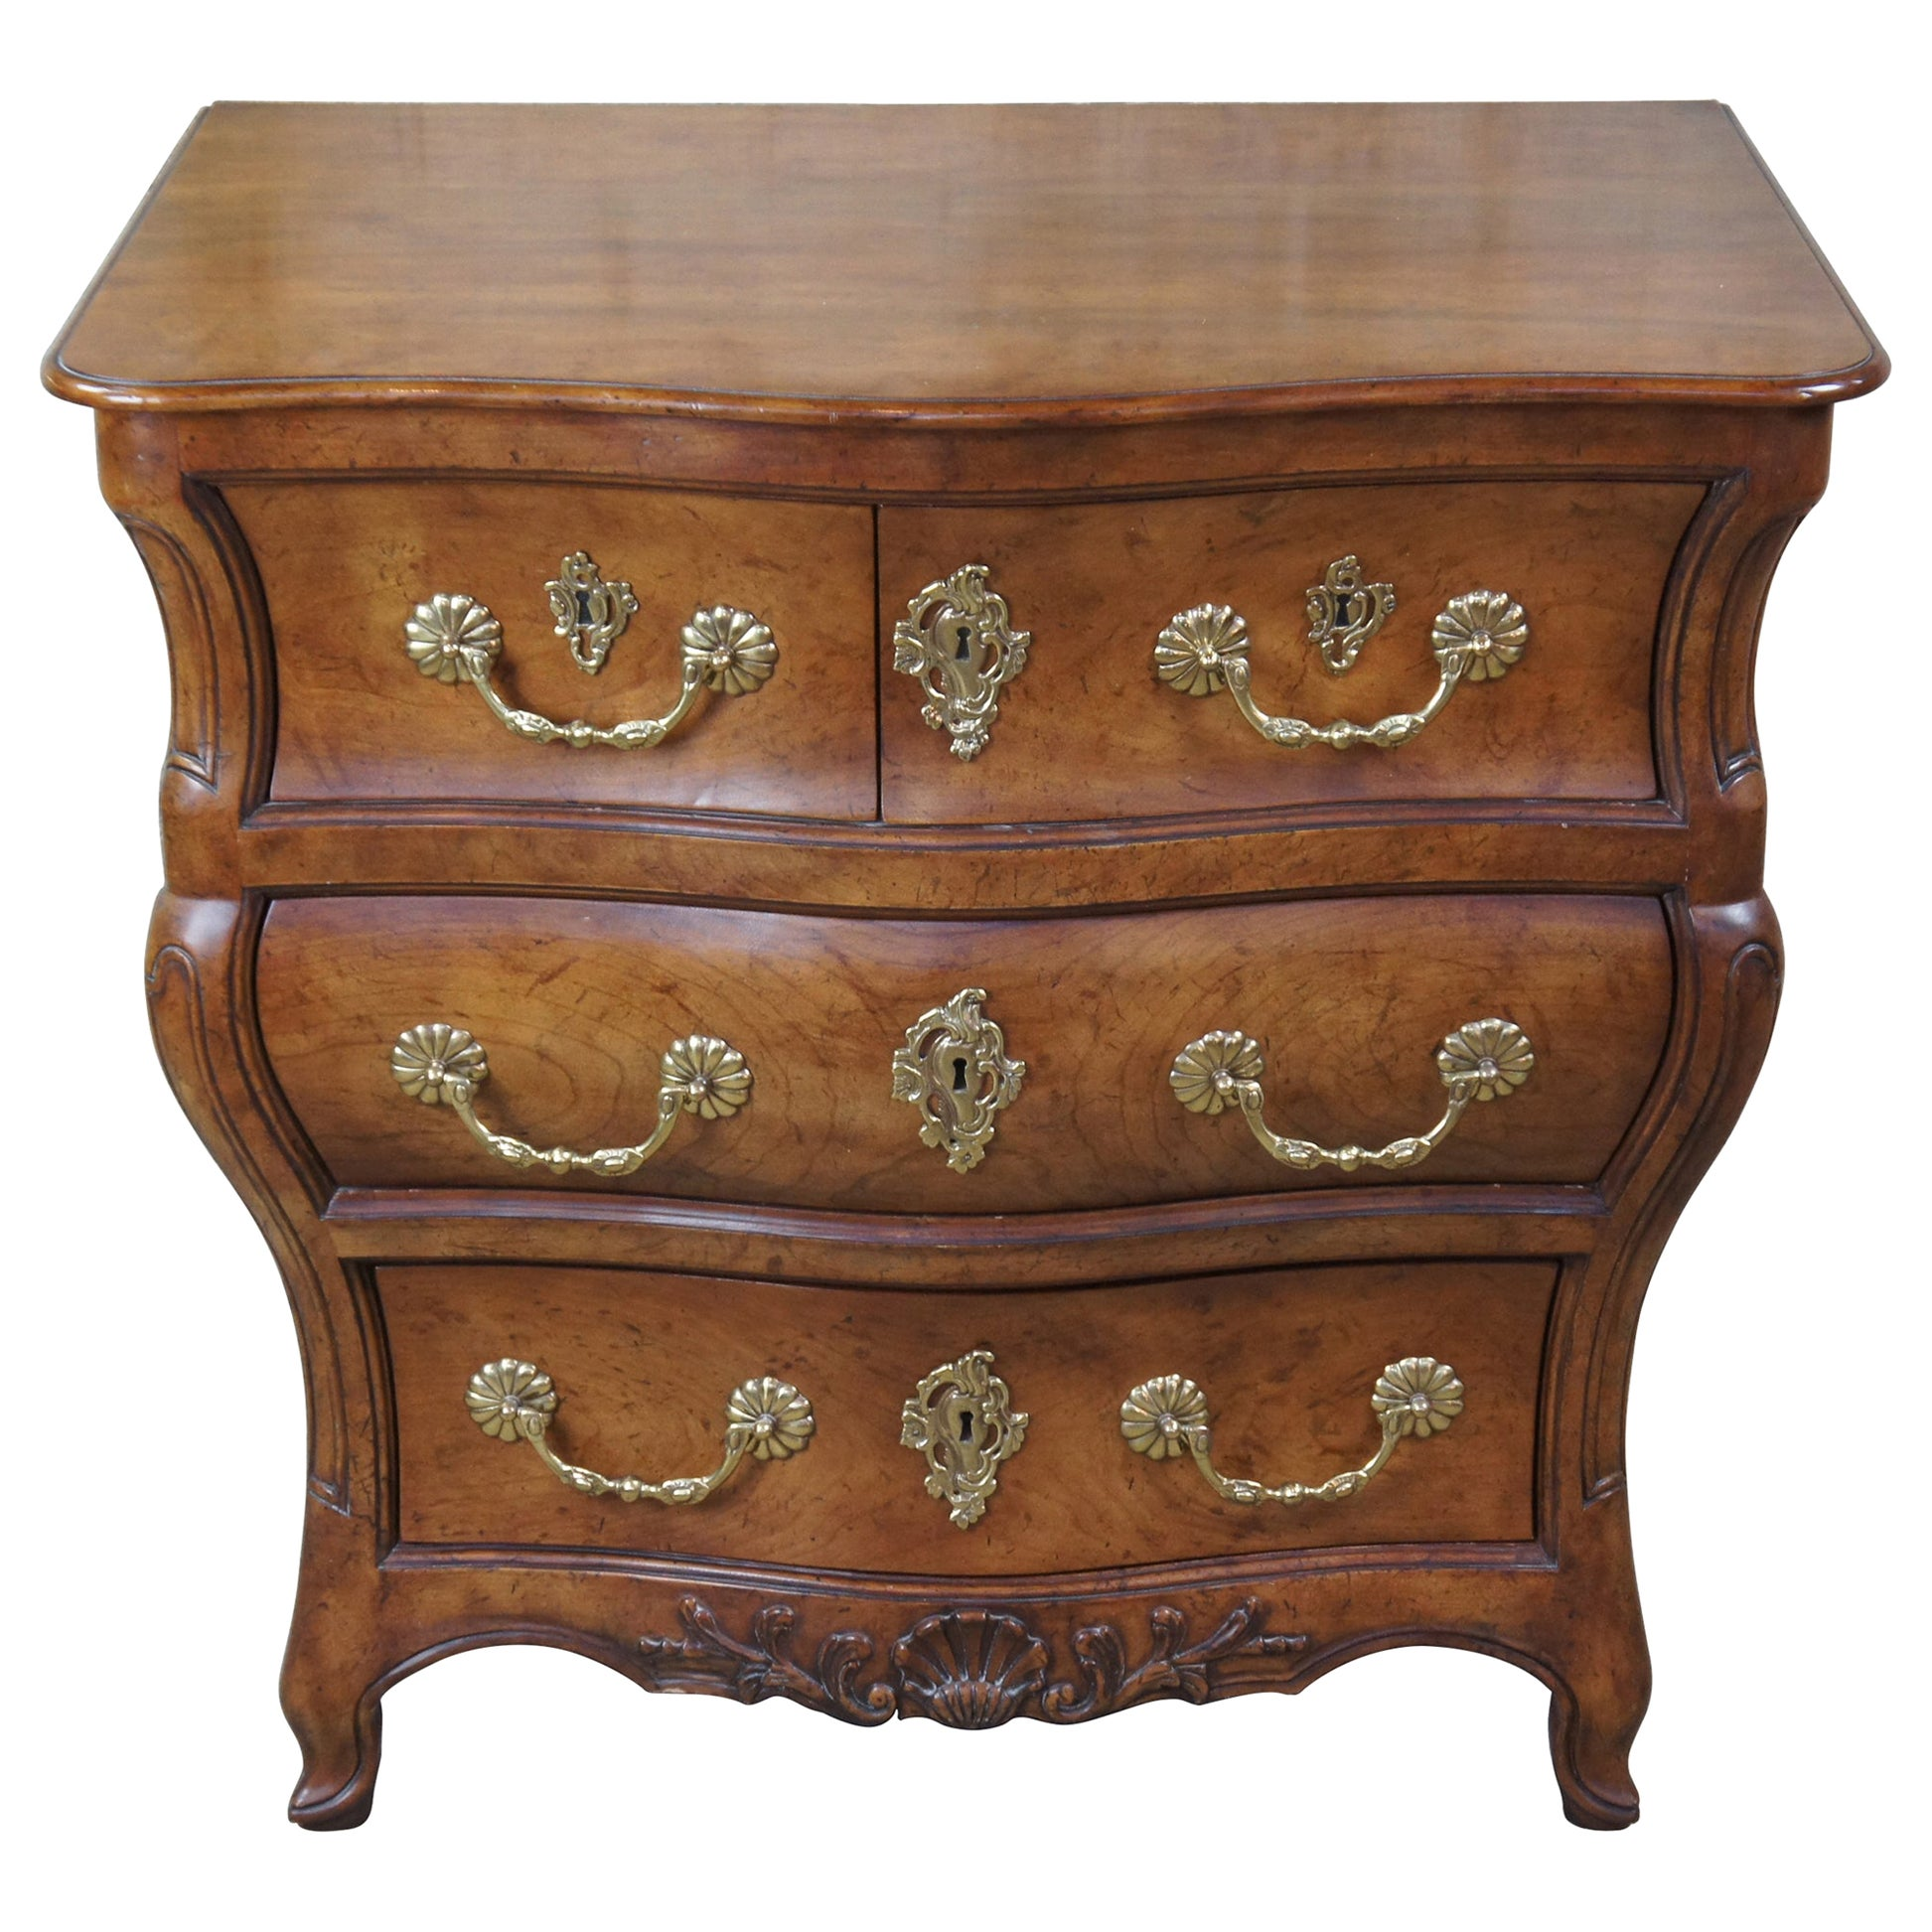 Baker Furniture McMillen Walnut Serpentine Louis XV Bombe Chest Commode Console